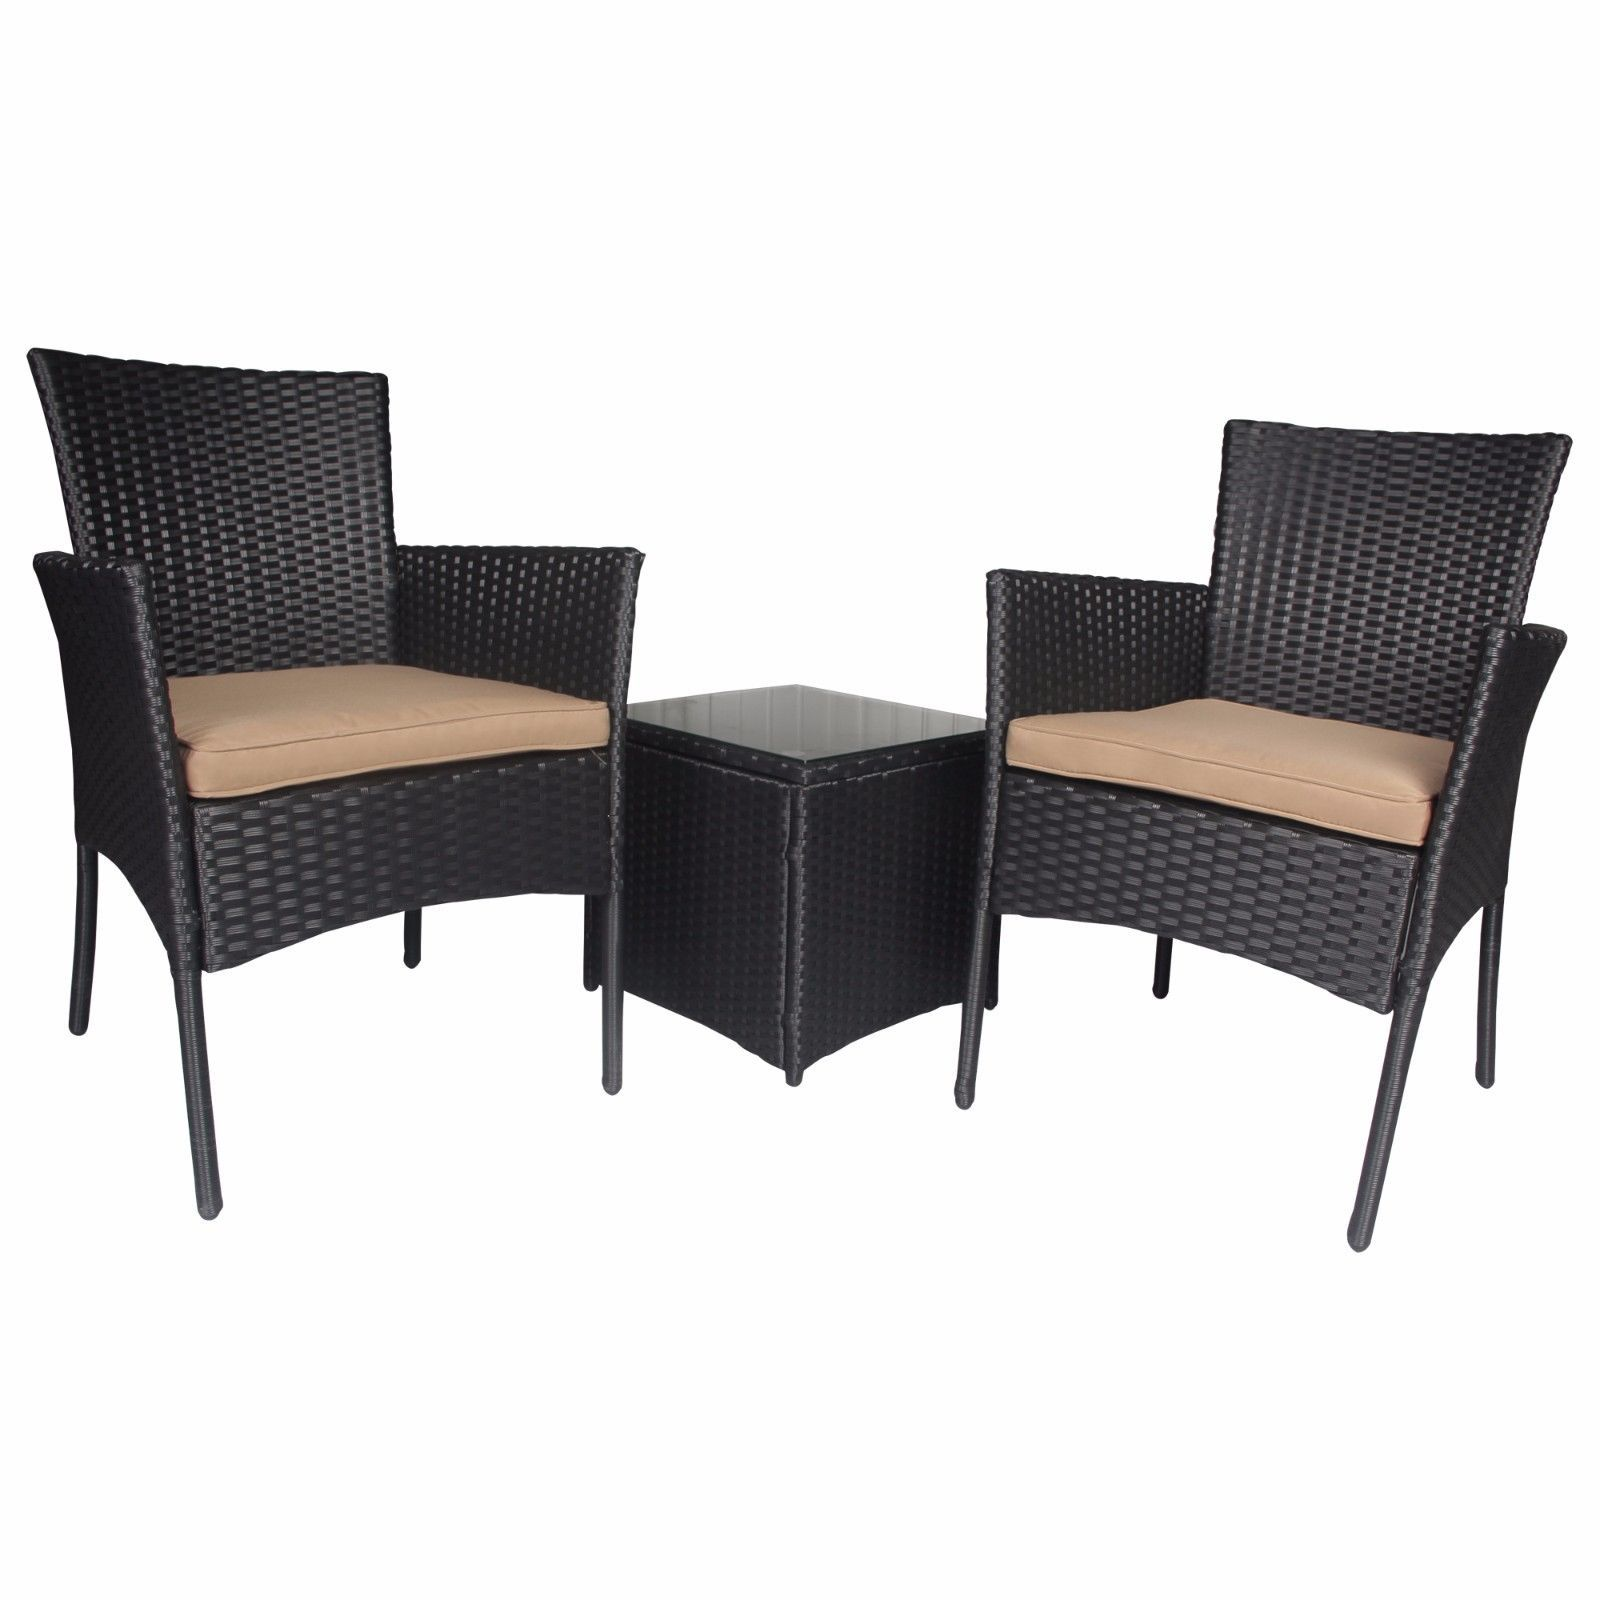 Outdoor 3 PC Bistro Sofa Table Set Wicker Conversation Sectional Furniture Patio